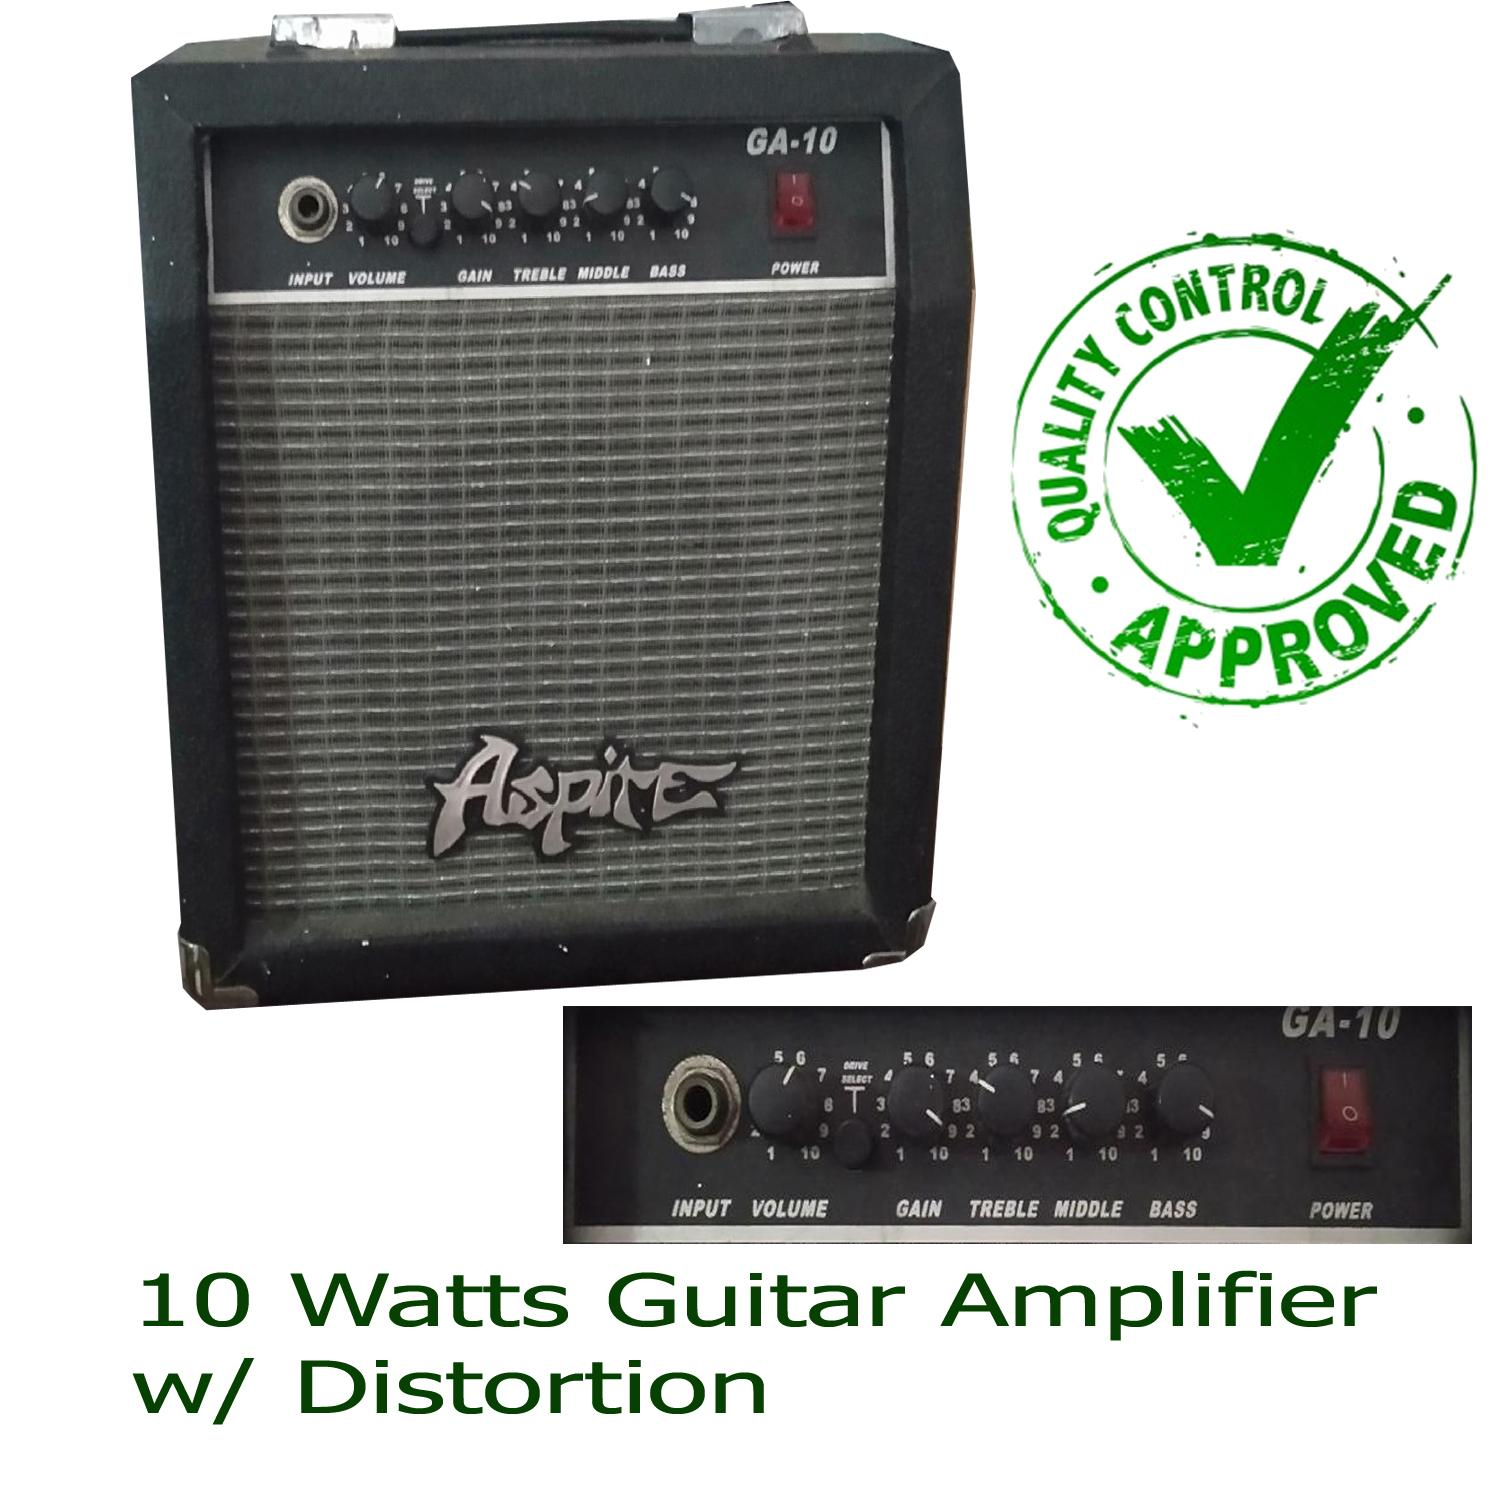 Guitar Amp For Sale Electric Best Seller Prices Cort Bass Wiring Diagram Amplifier Aspire 10watts Ga 10 With Overdrive Alternative Brand To Global